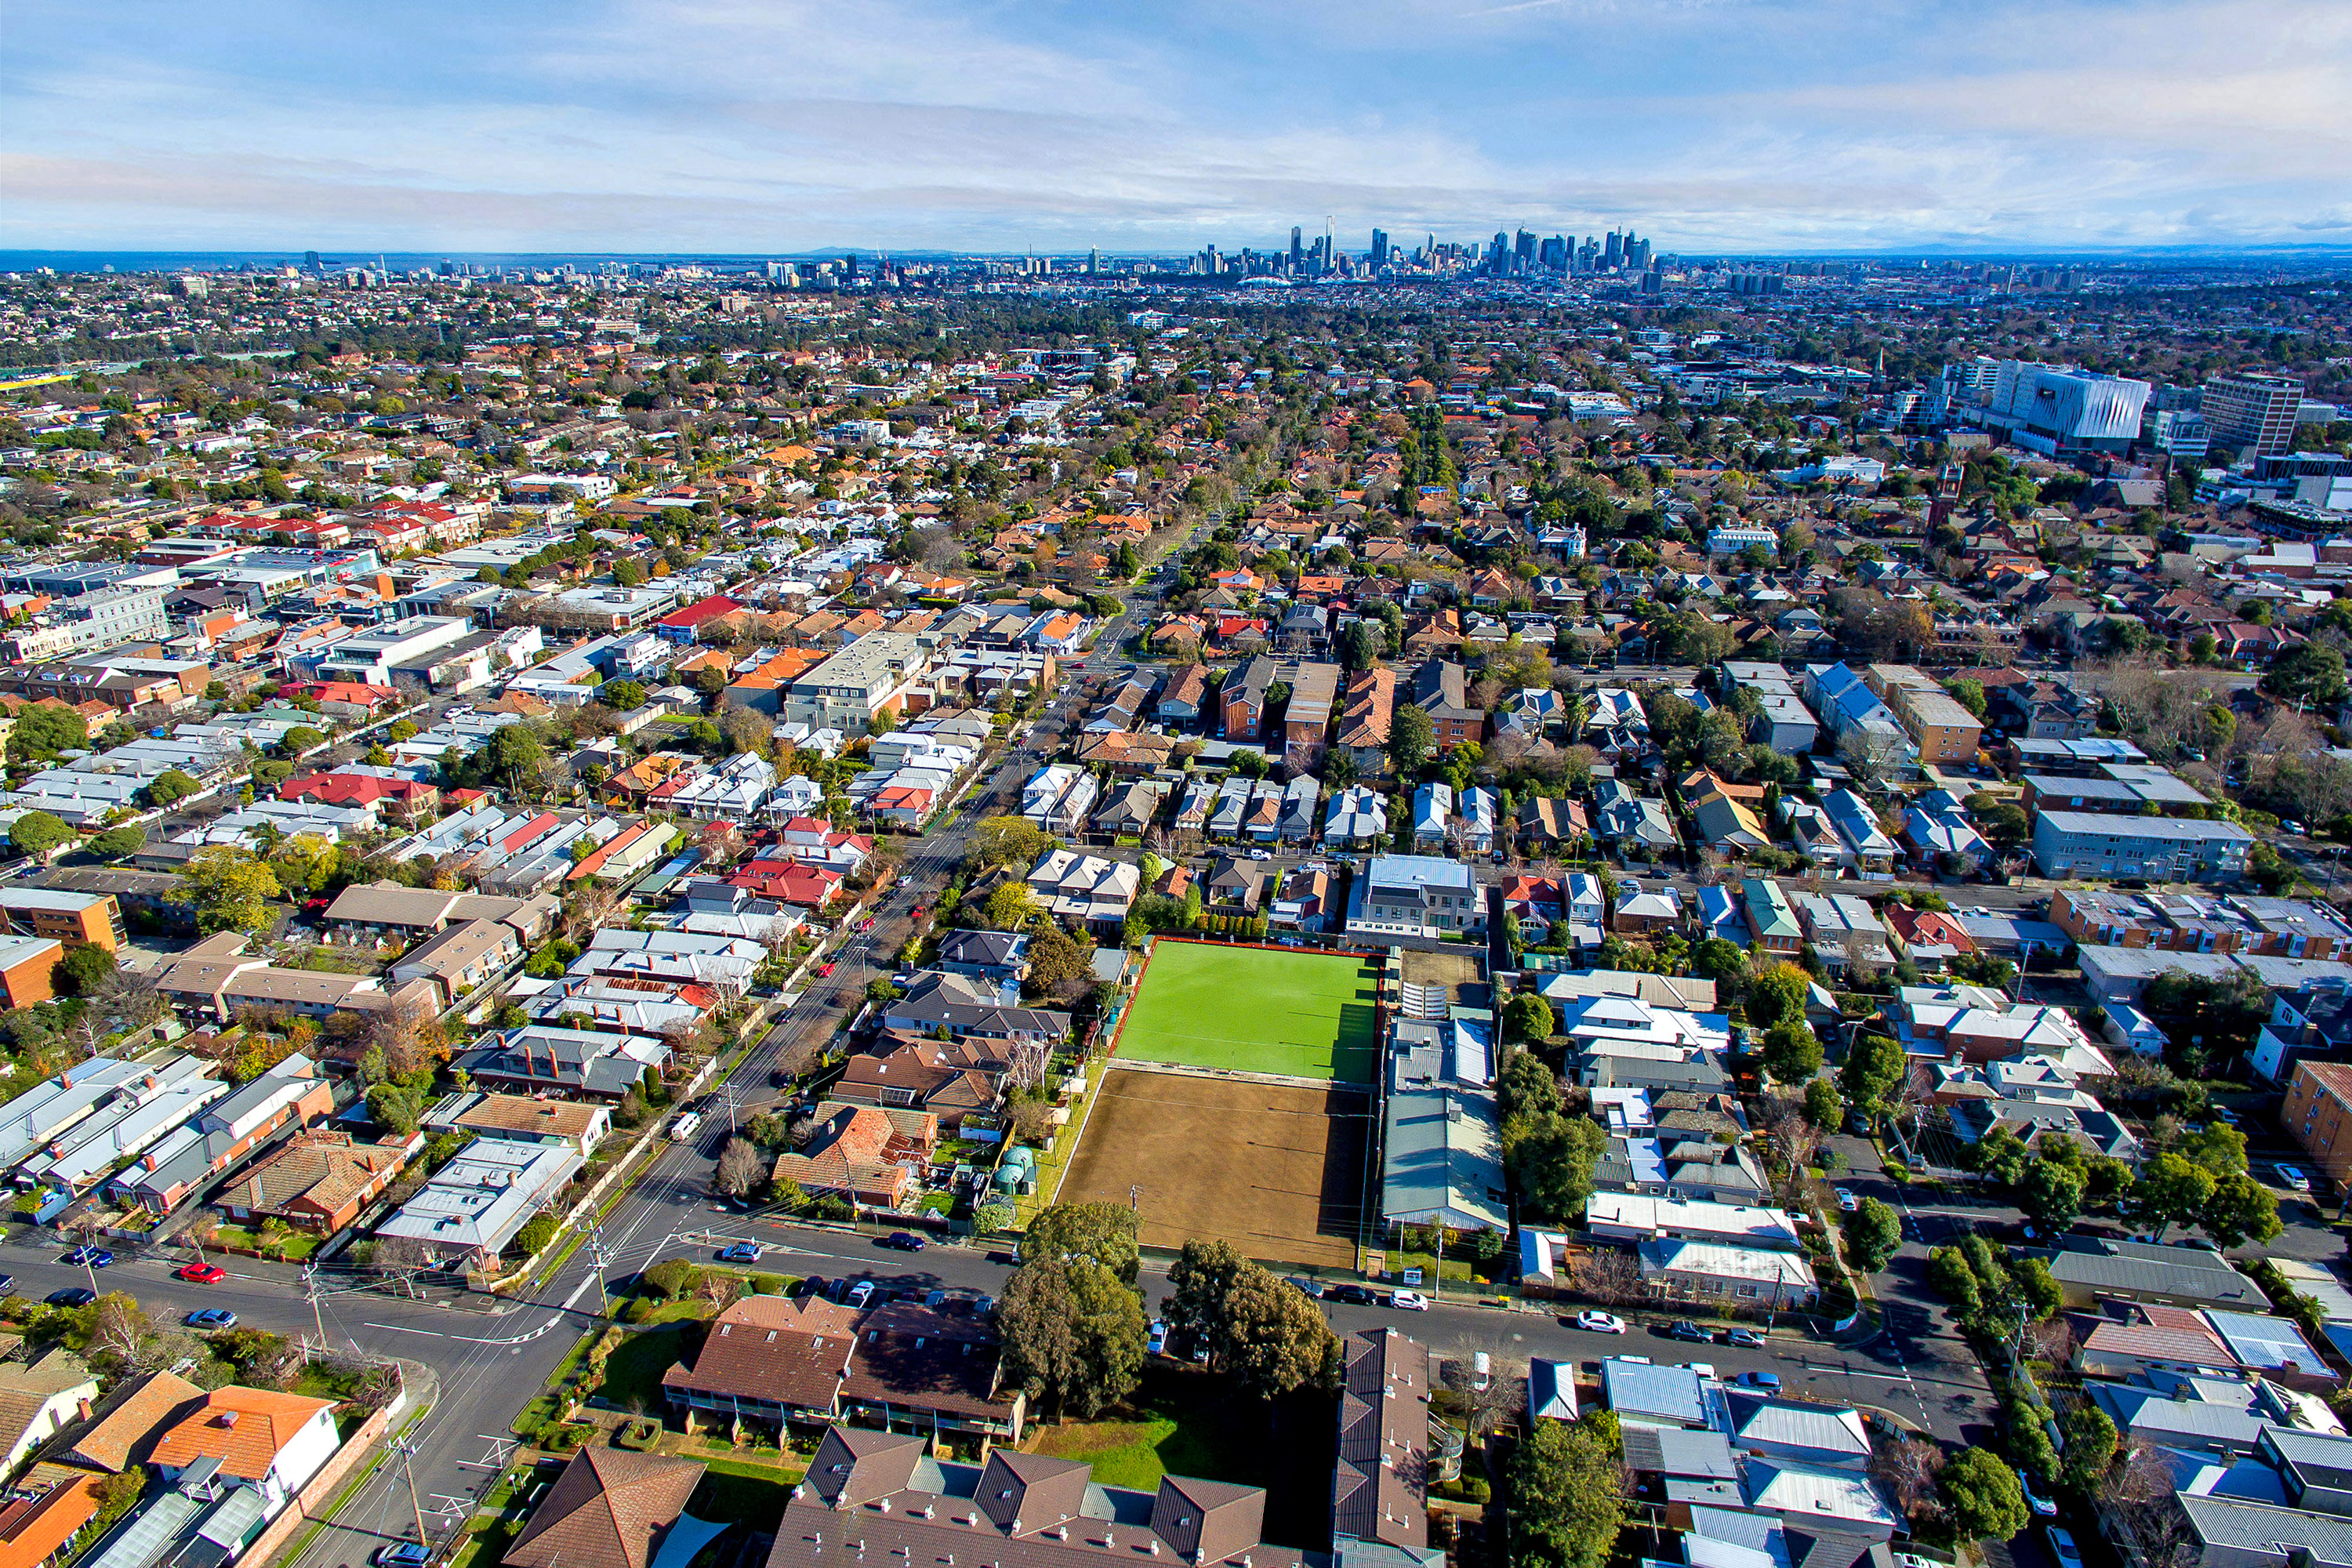 Drone view of Auburn and the Melbourne CBD